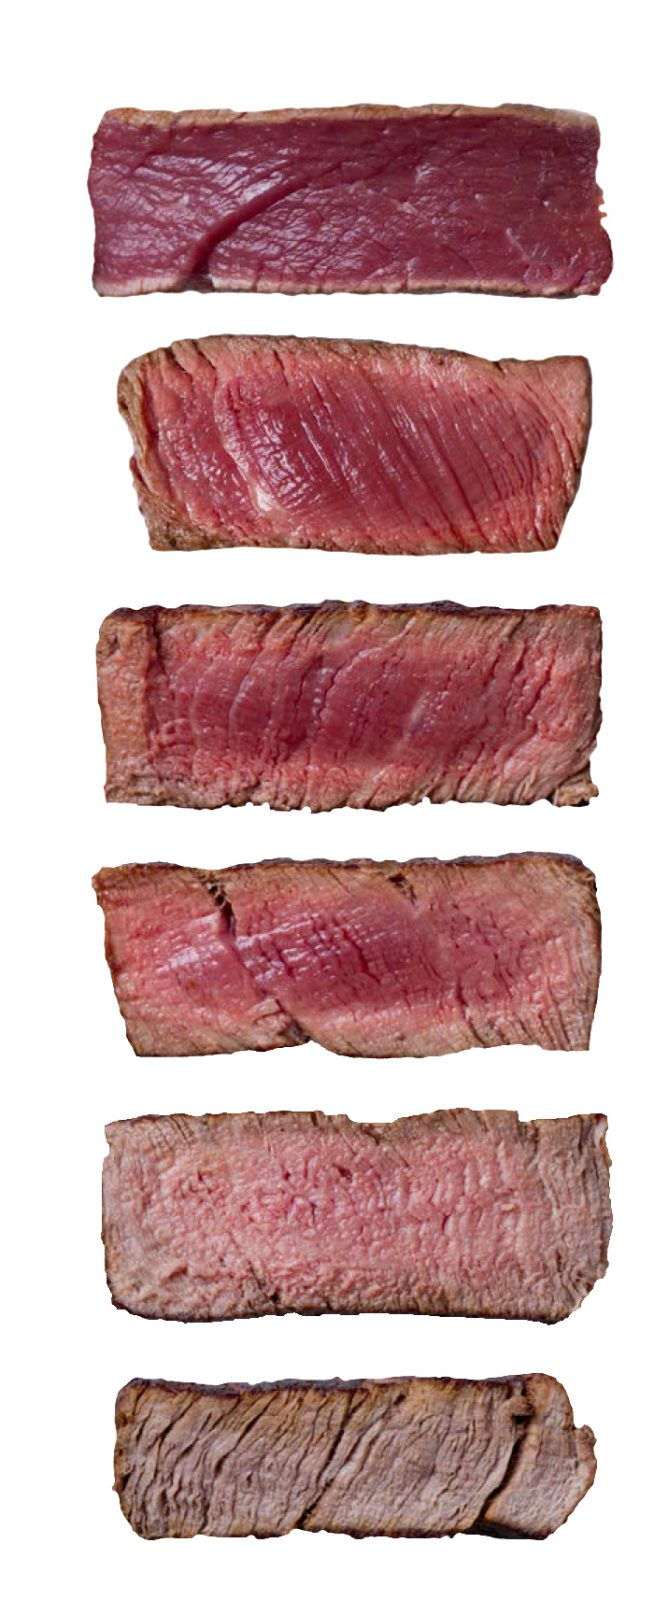 how to cook steak well done on grill